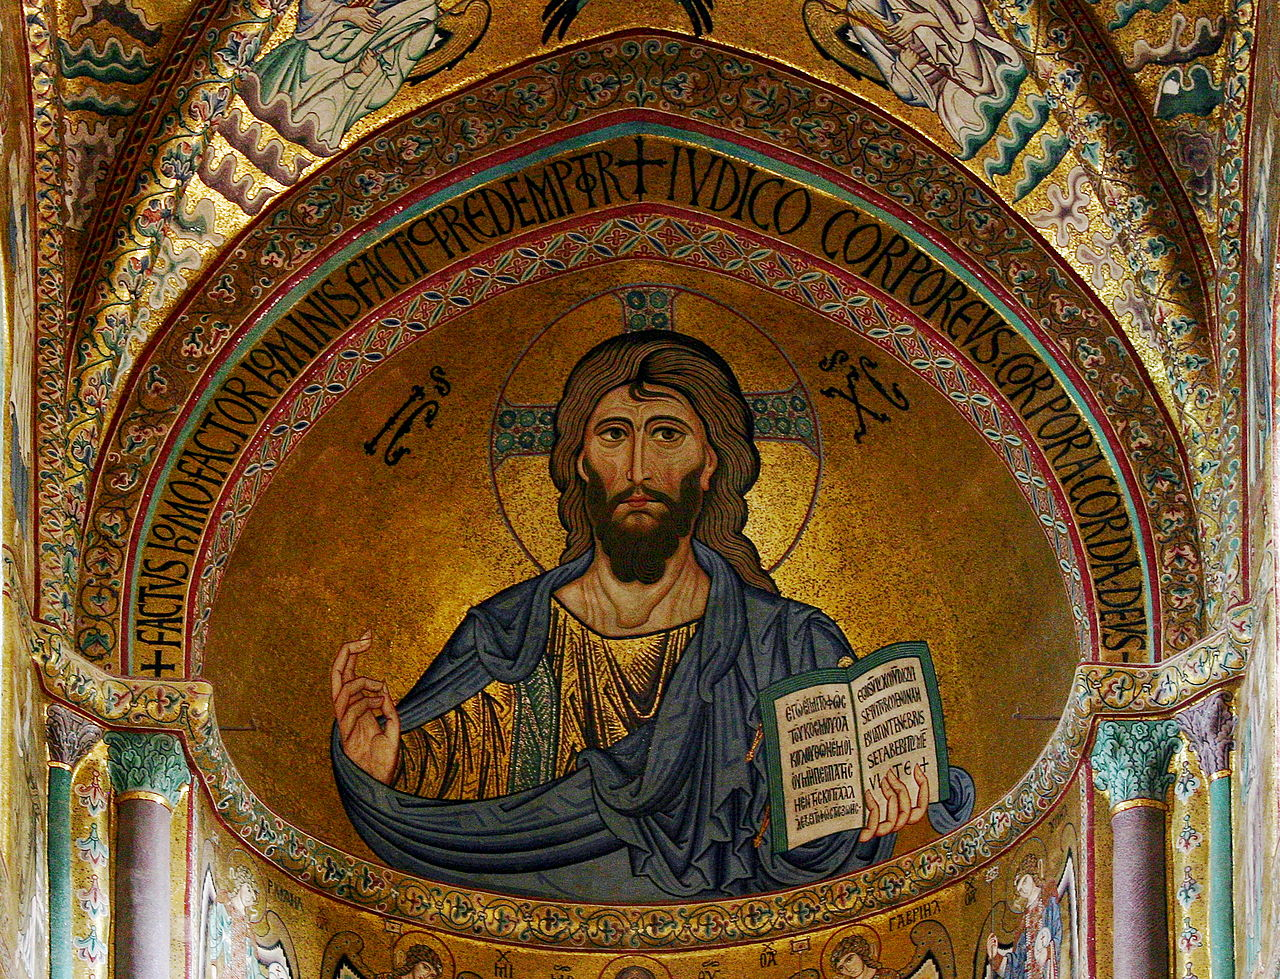 Christ Pantocrator in the Cathedral of Cefalù